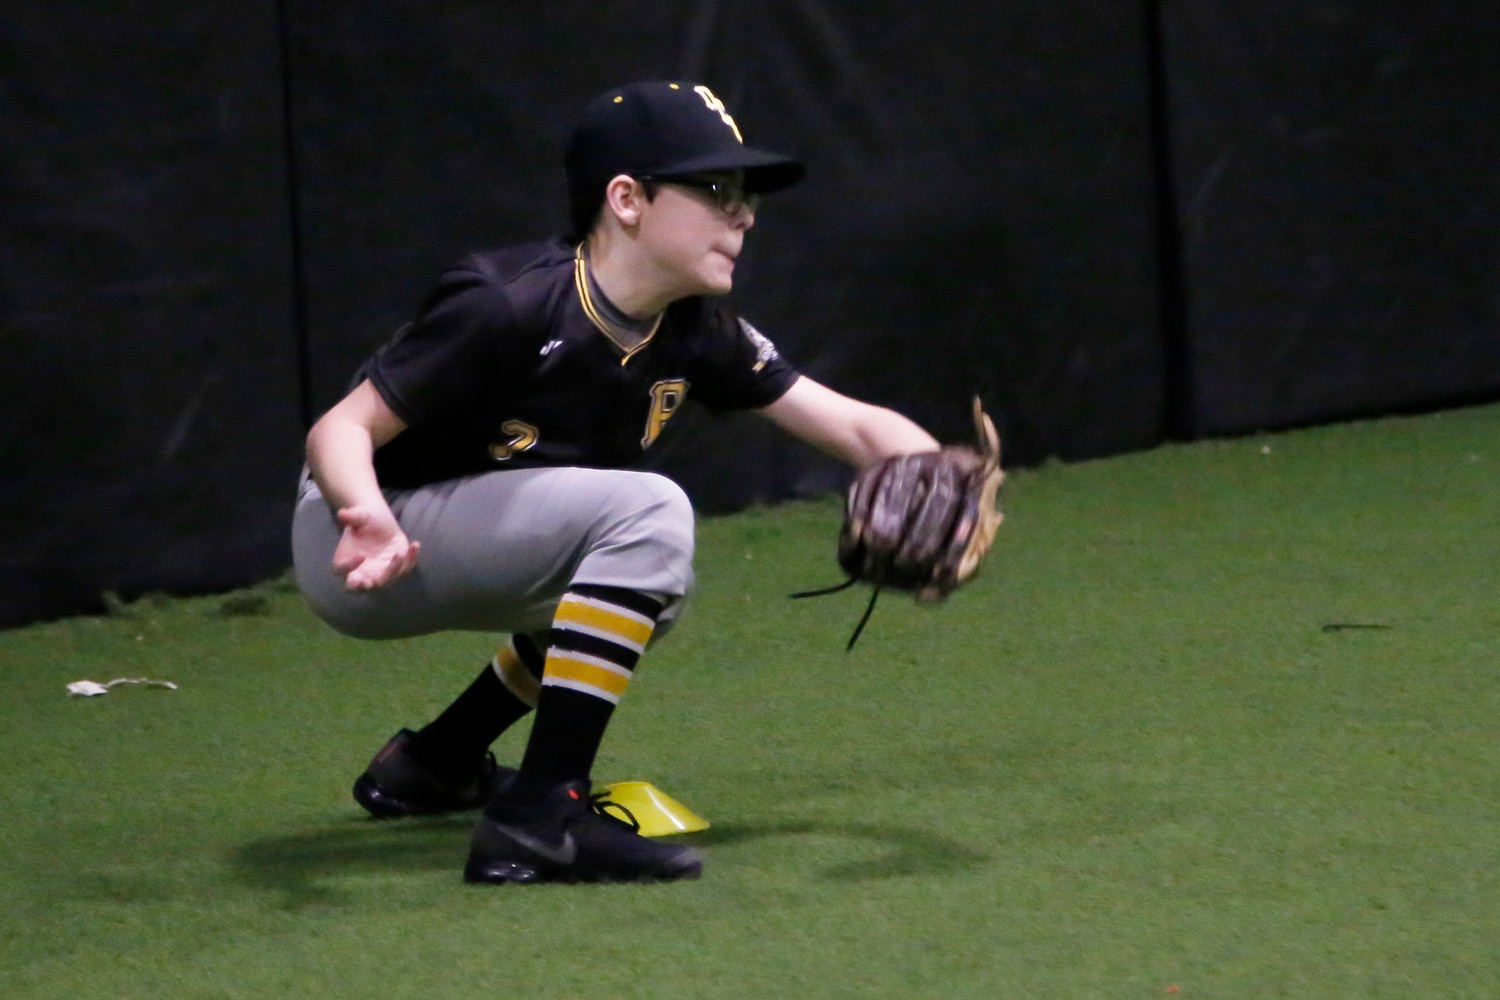 12-year old Josh Sepe from Hewlett practices sweeping the base.